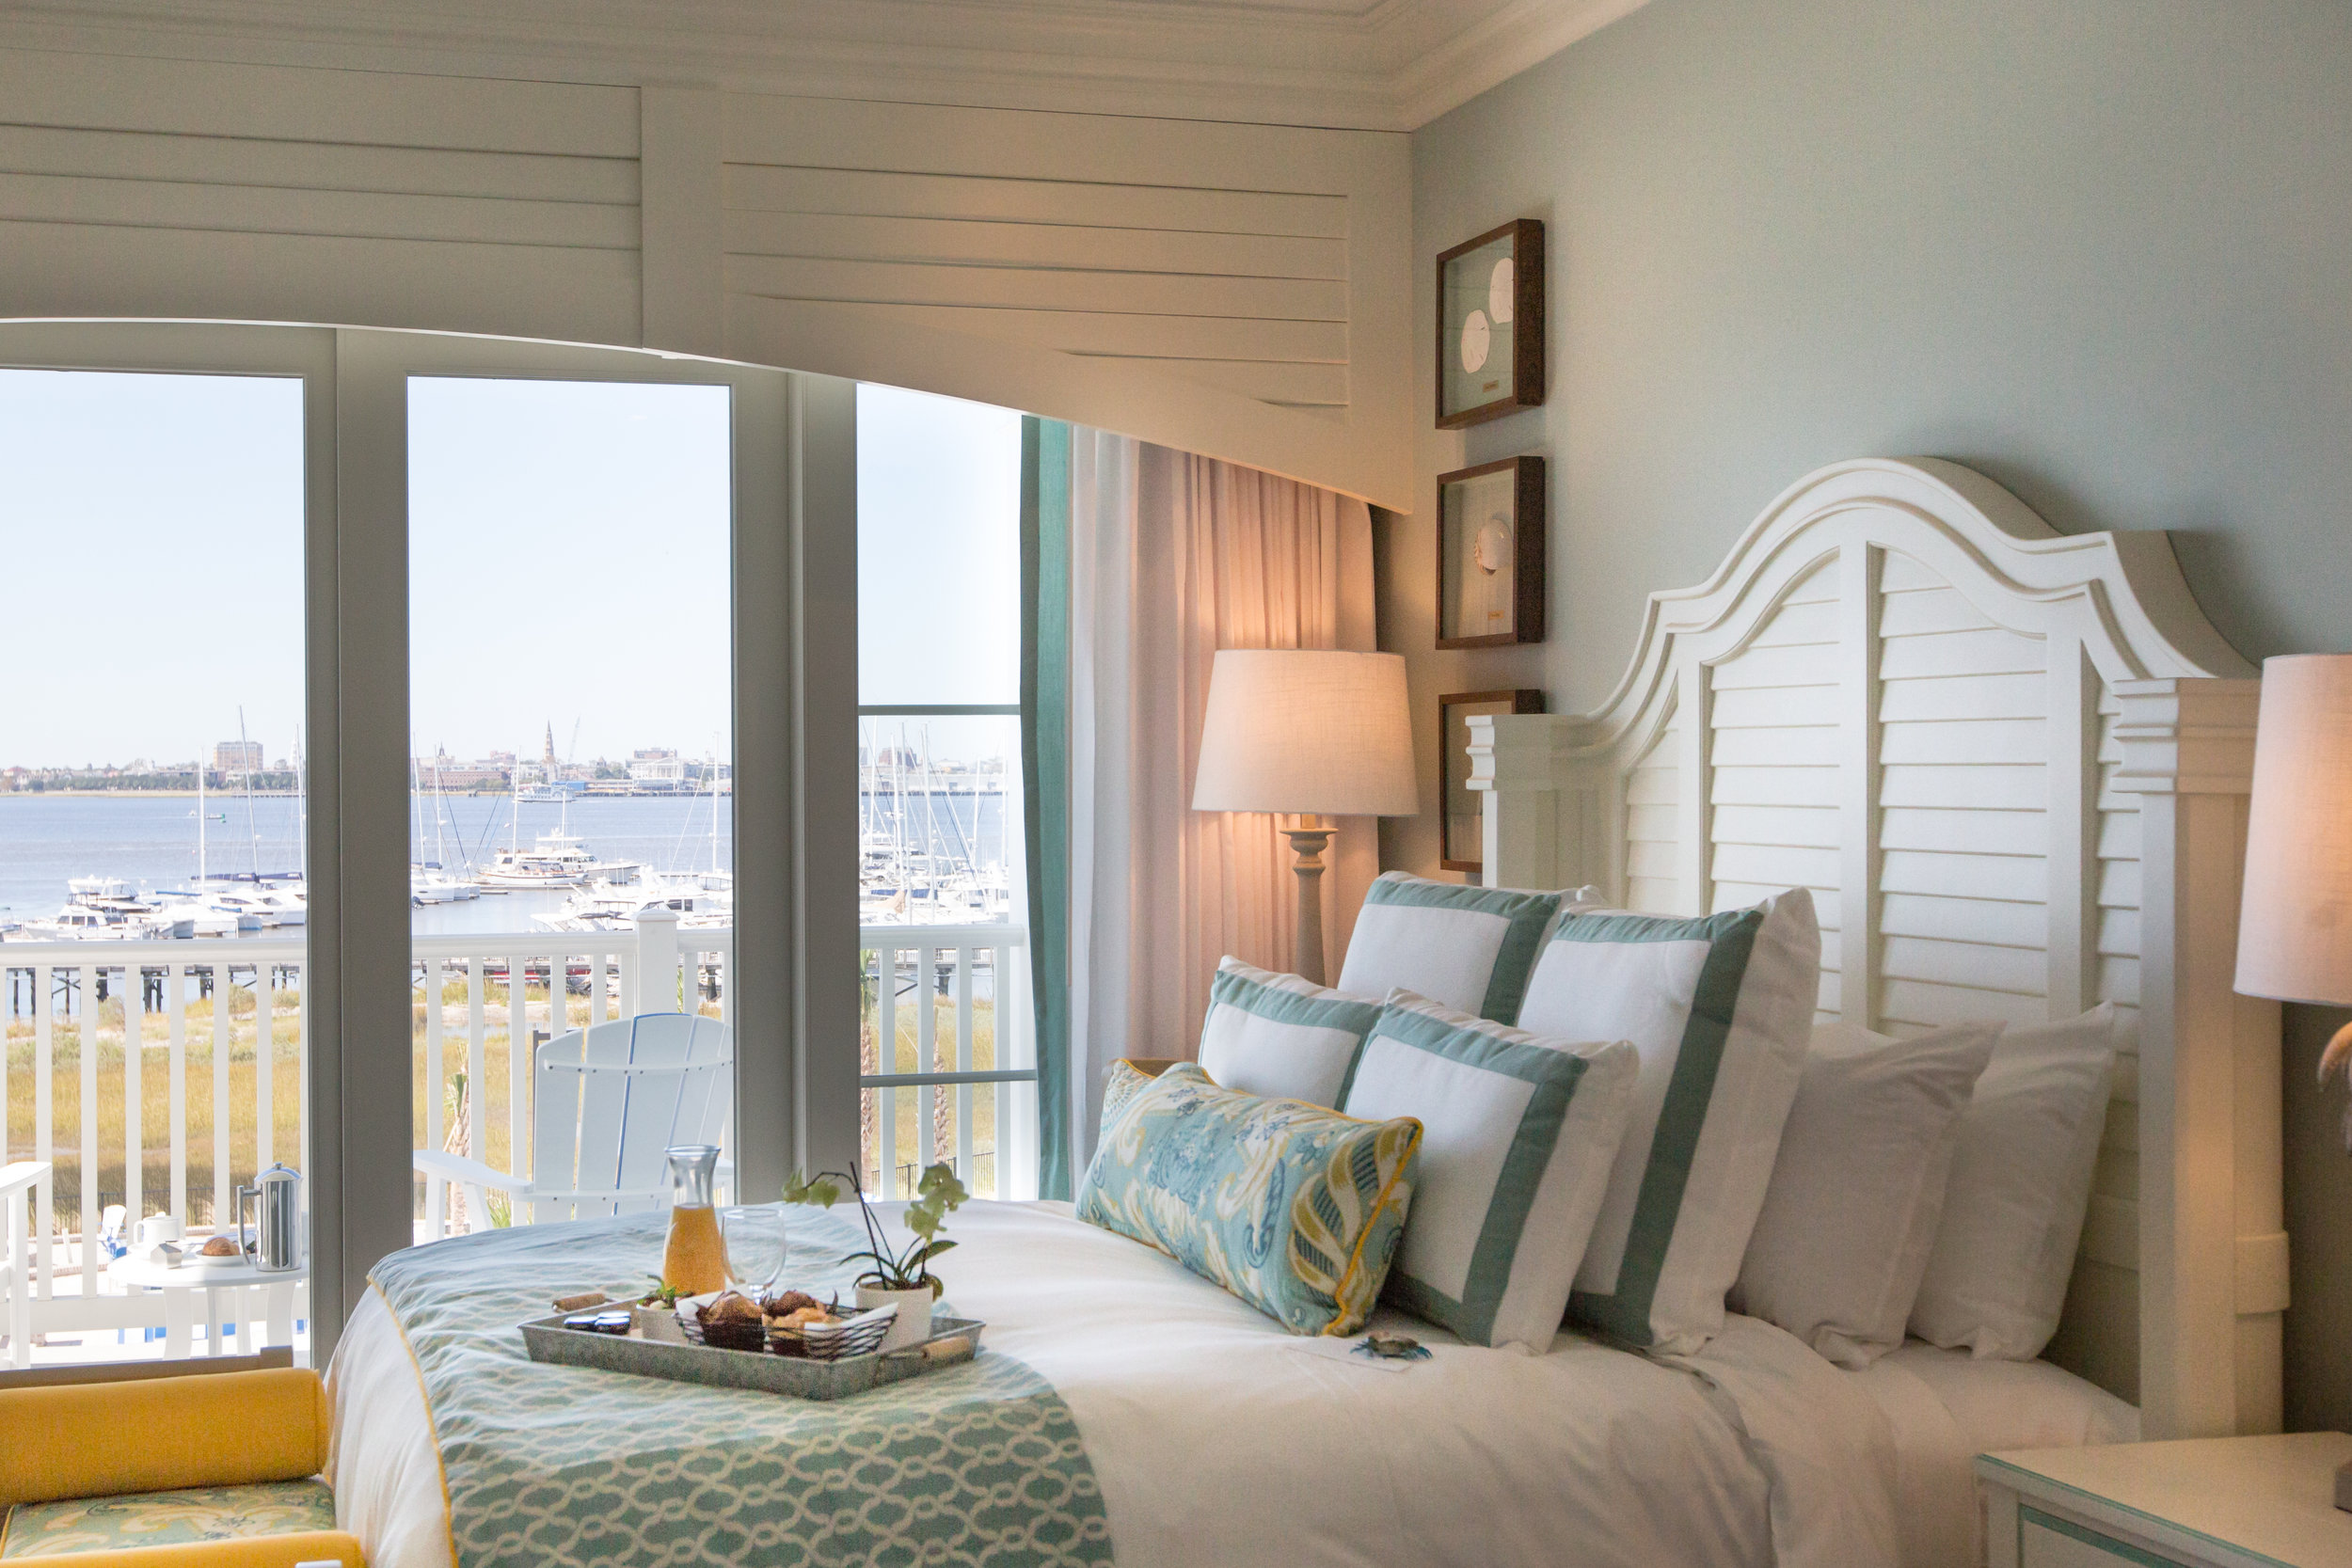 wanderlust-blog-charleston-beach-club-room.jpg